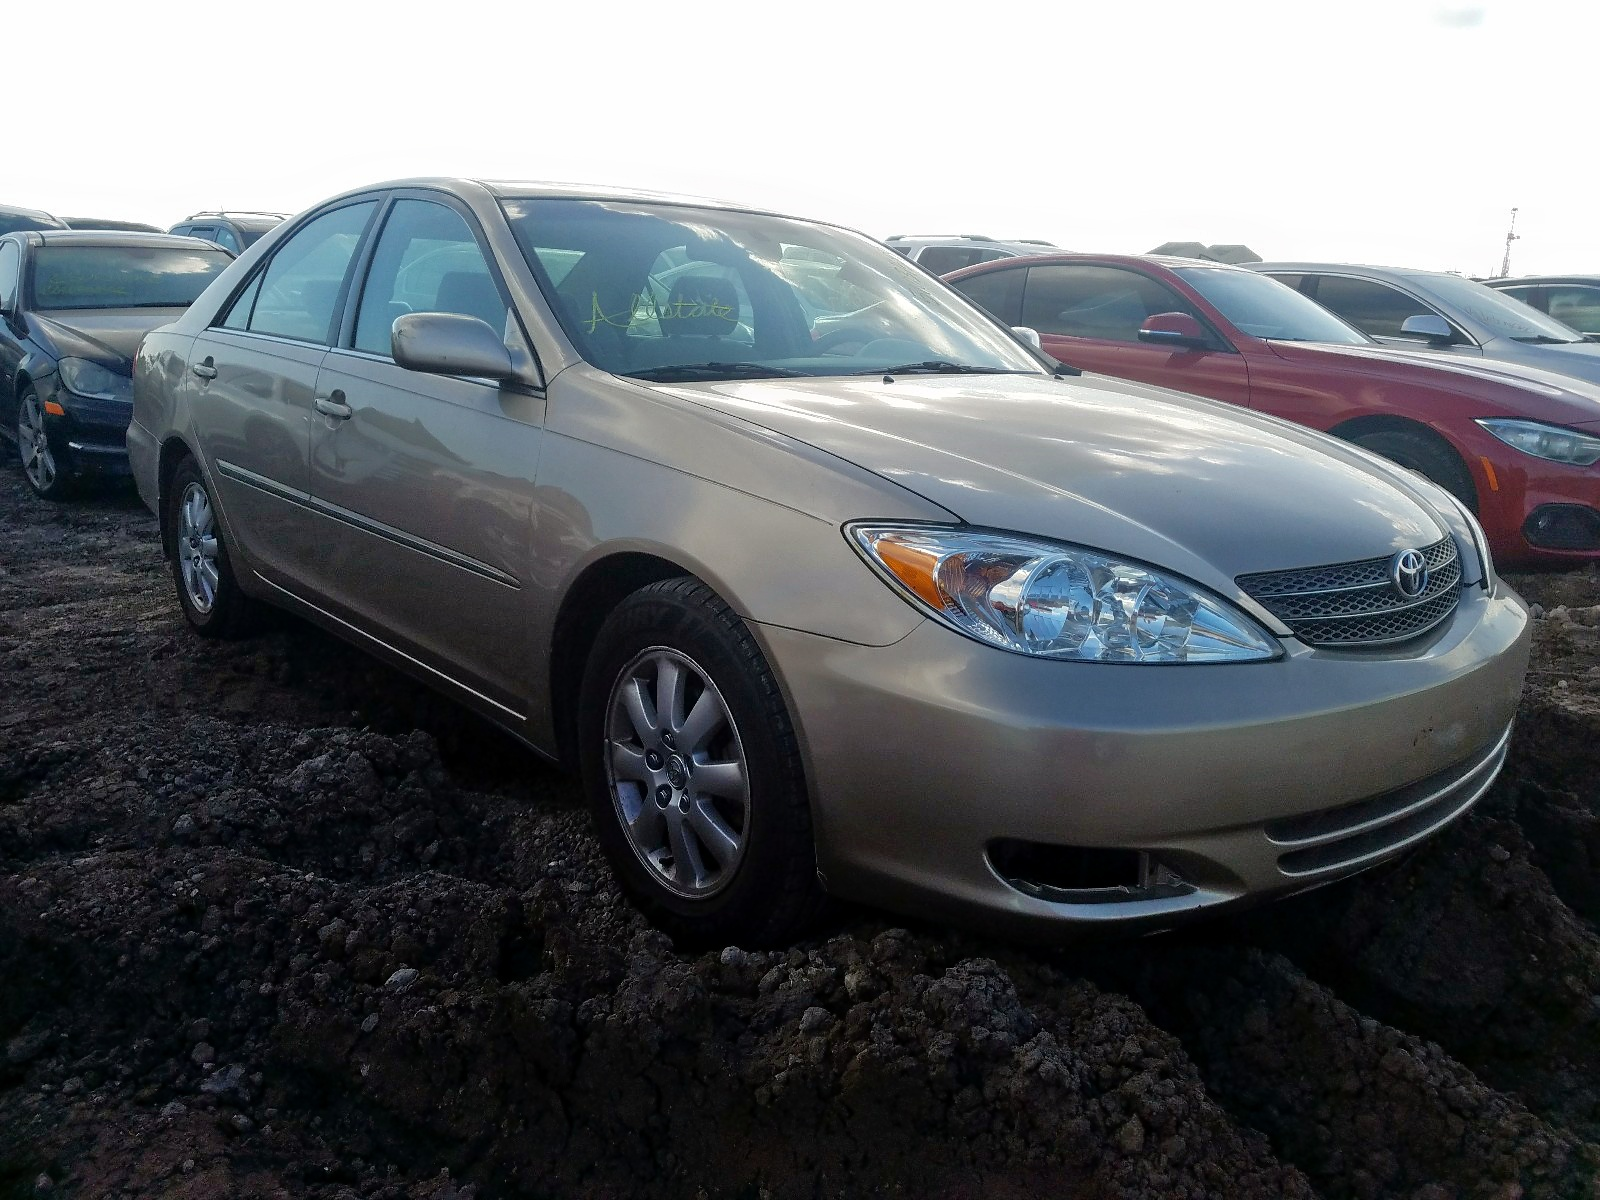 2002 Toyota Camry Le 2.4L Left View